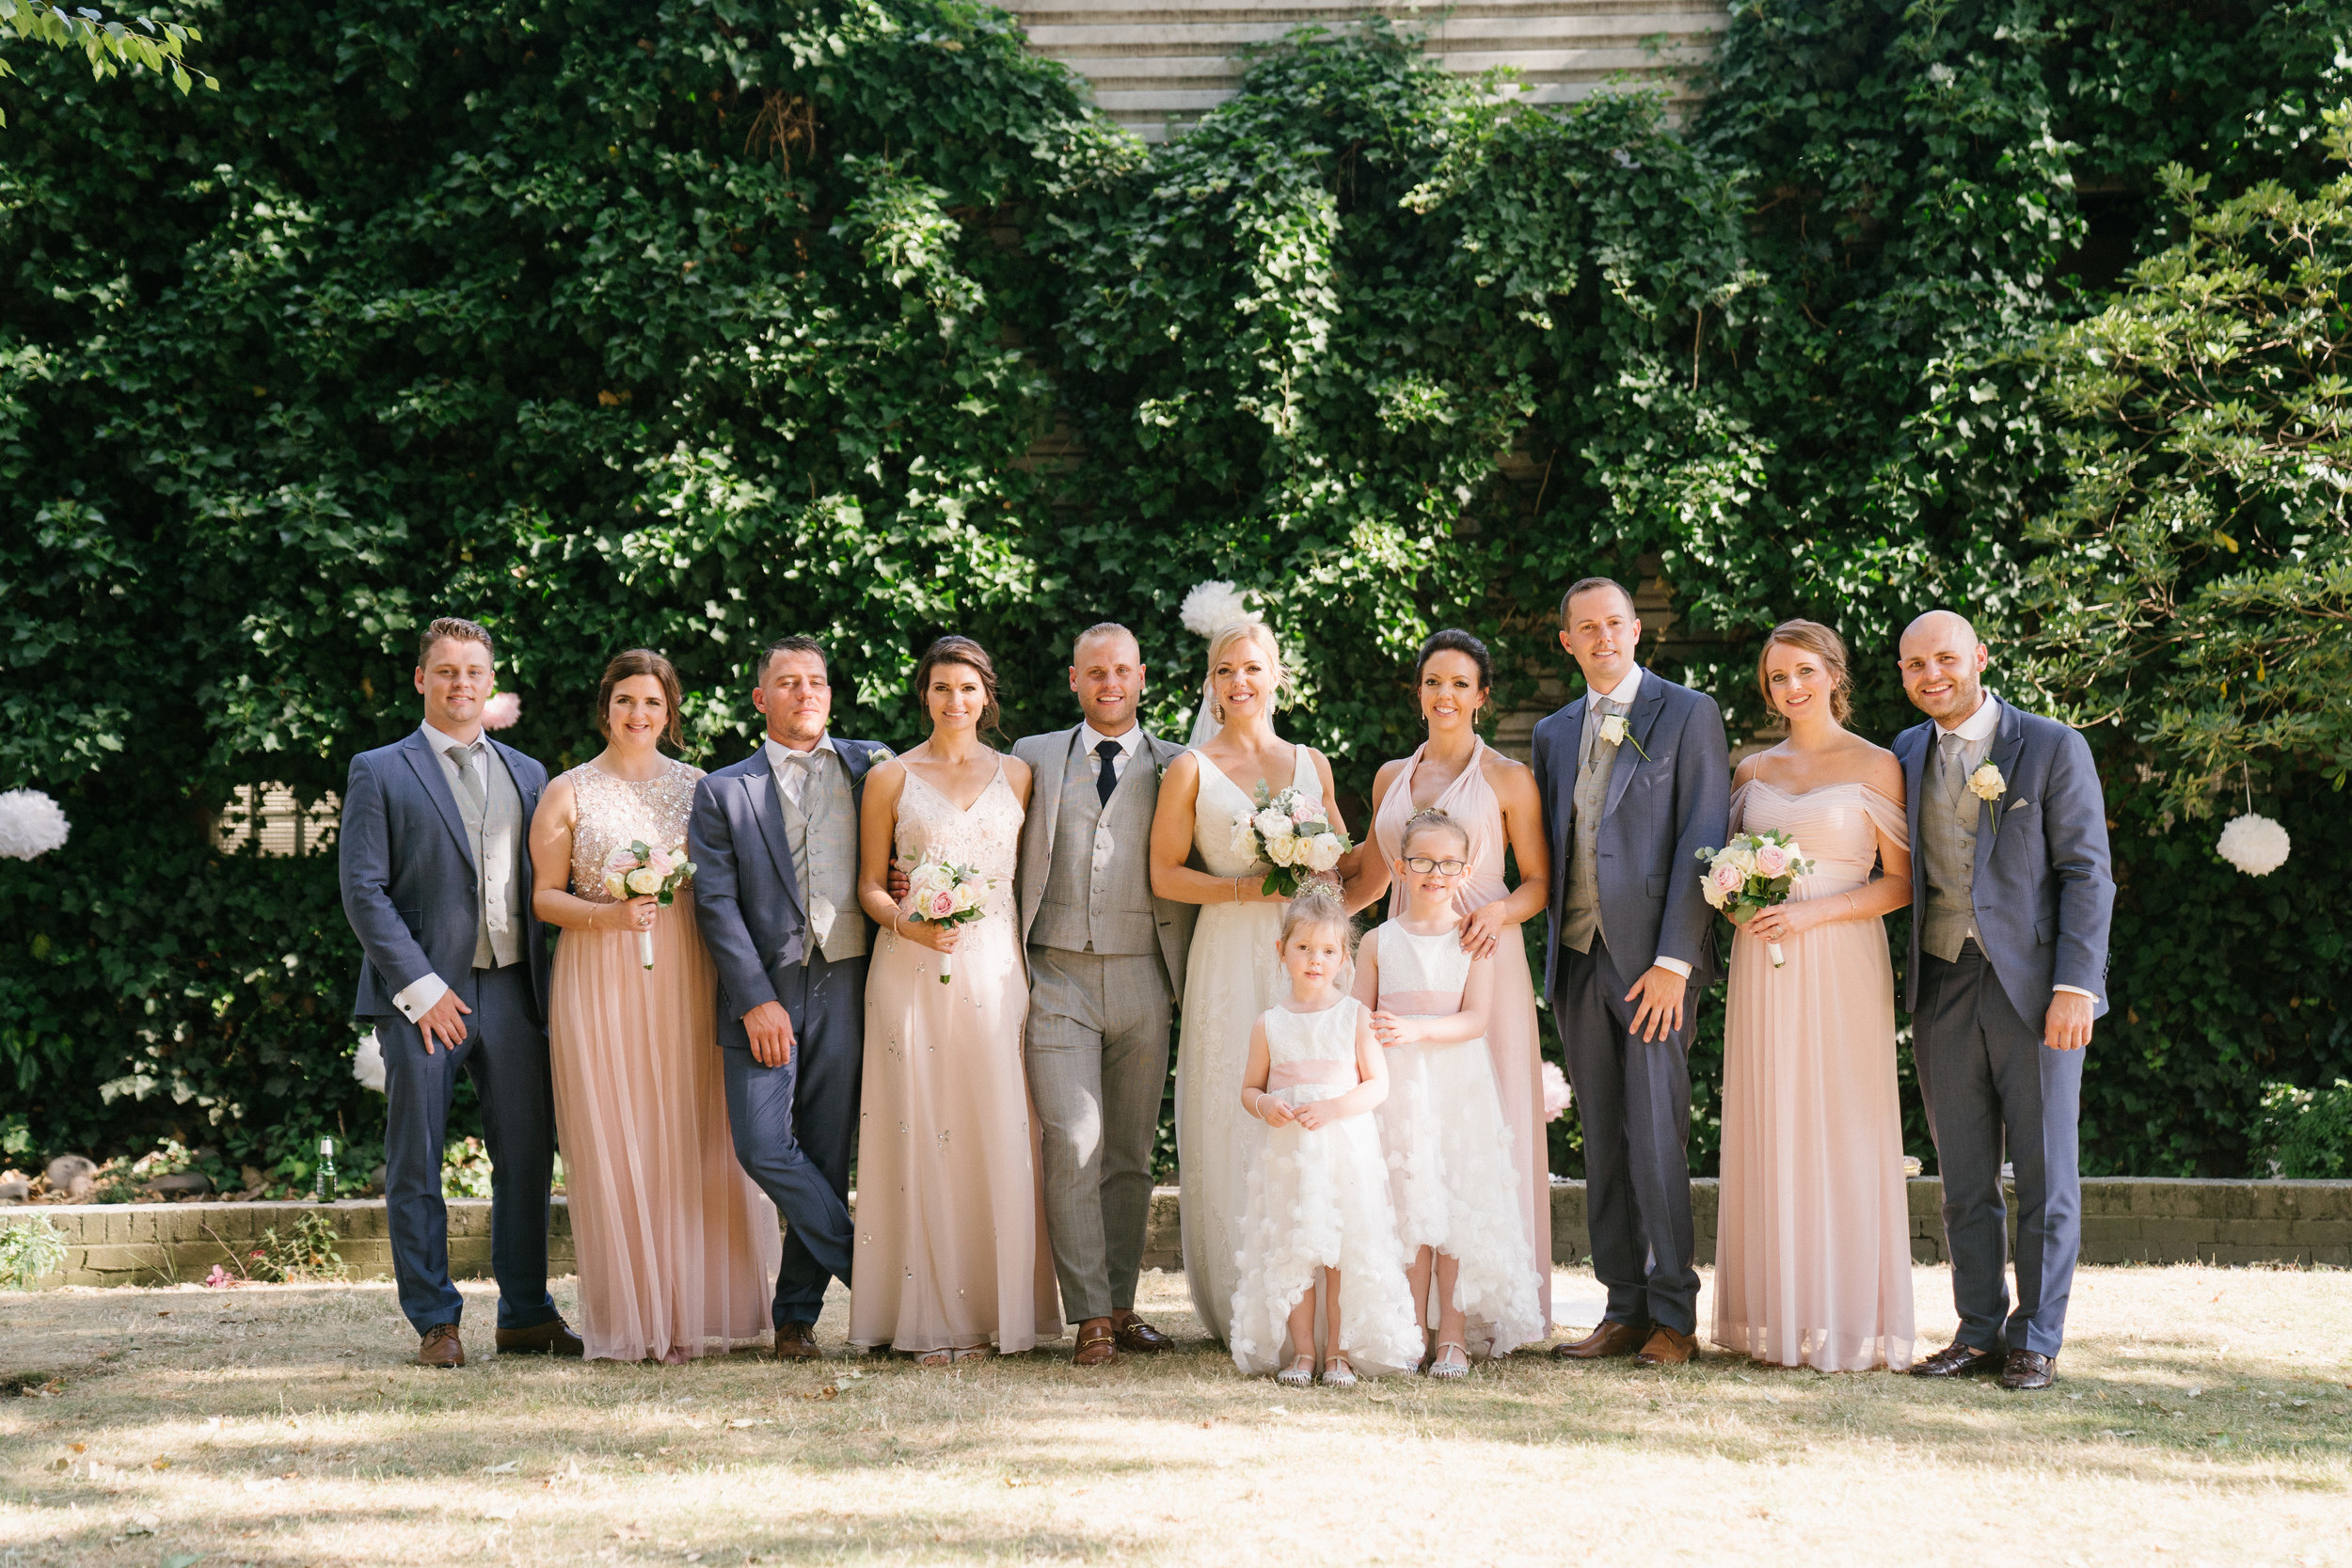 marylebone-old-town-hall-wedding-photography-videography-57